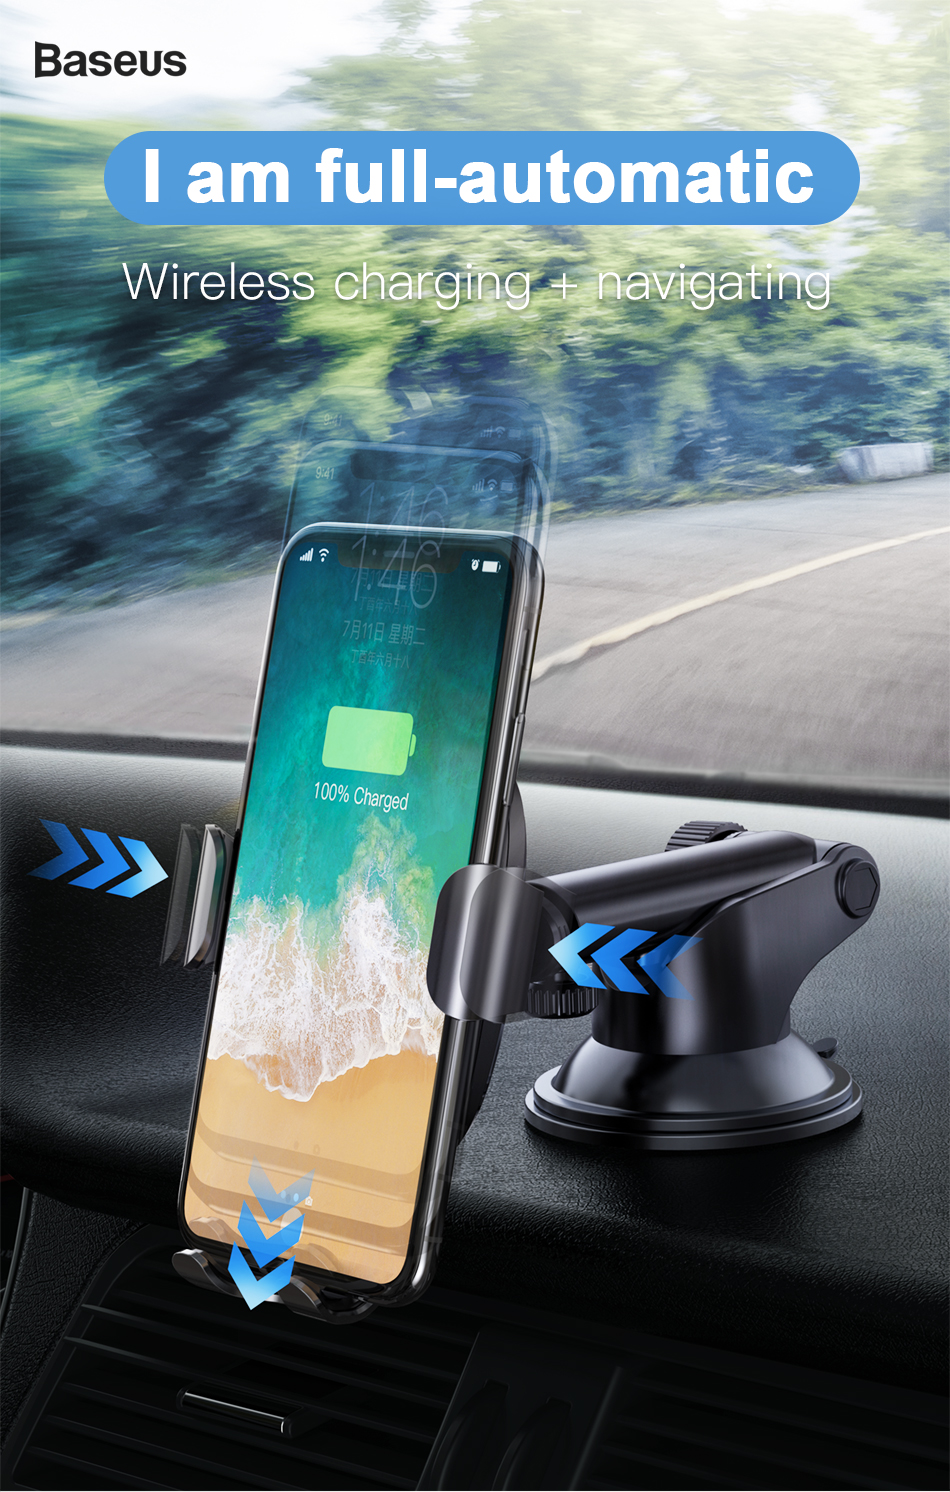 Baseus Wireless Car Charger For iPhone Xs Max Xr X 8 Samsung Note 9 Qi Wireless Charger Fast Wirless Charging Car Phone Holder 12